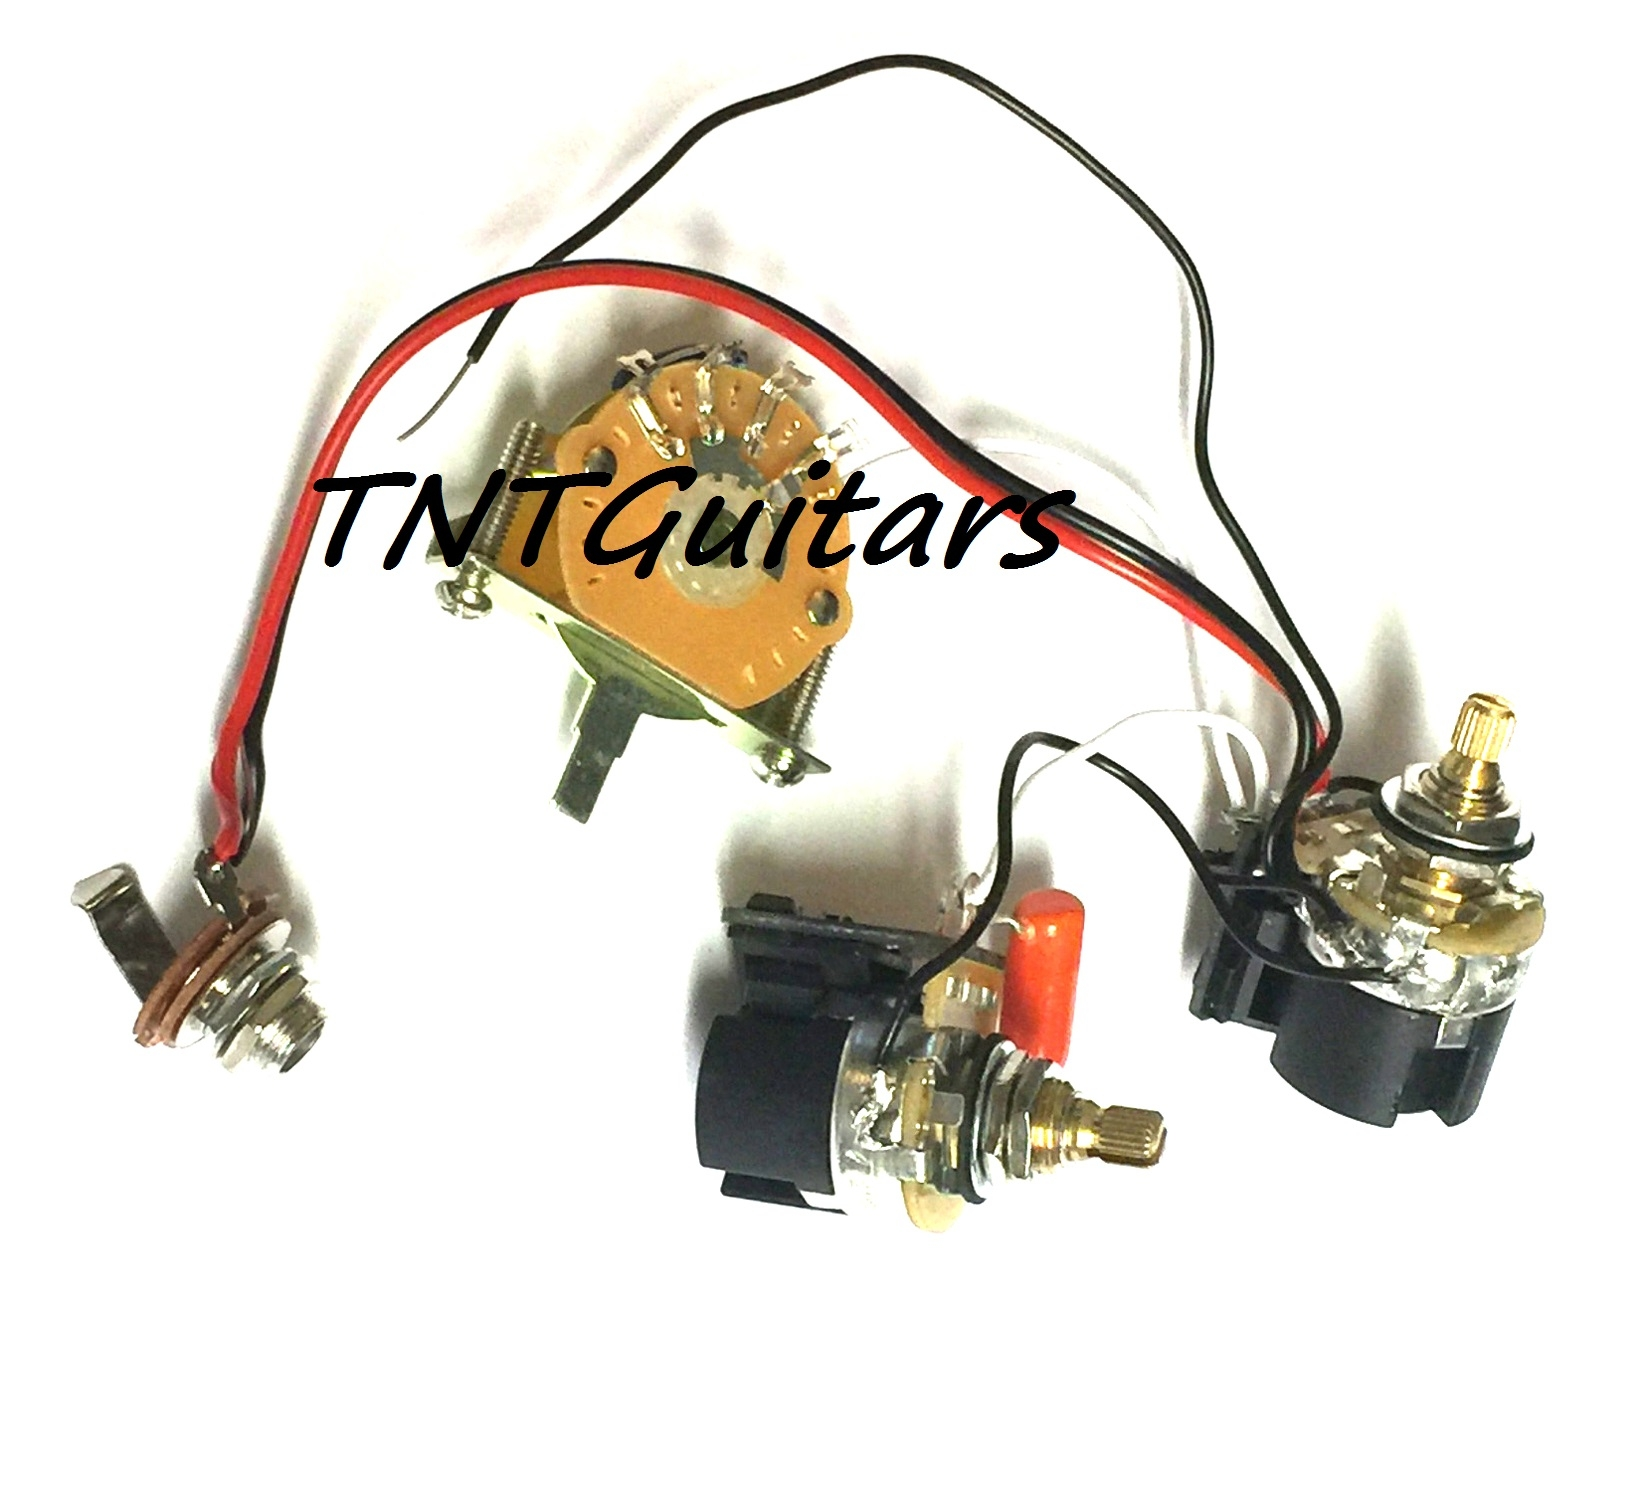 1V1T Prewired Harness, 2 Pickup CTS PUSH-PULL w/ DUAL Coil Split on wire alligator clips electrical, torque converter components, speaker components, electronic circuit components,